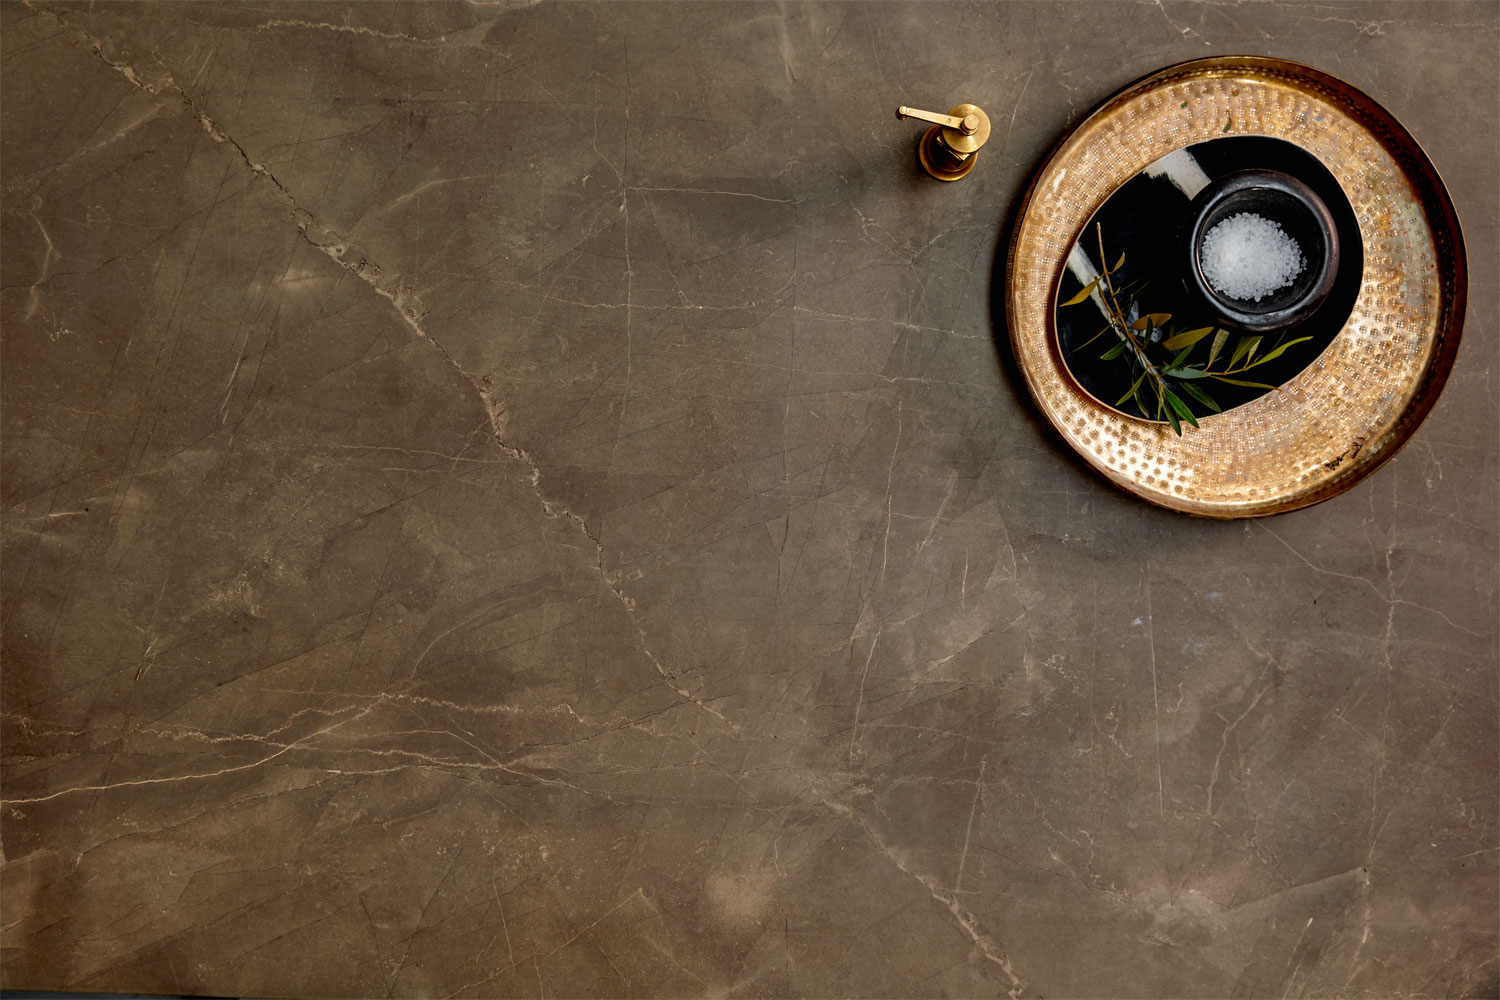 Porcelain perfection: a bold new surface